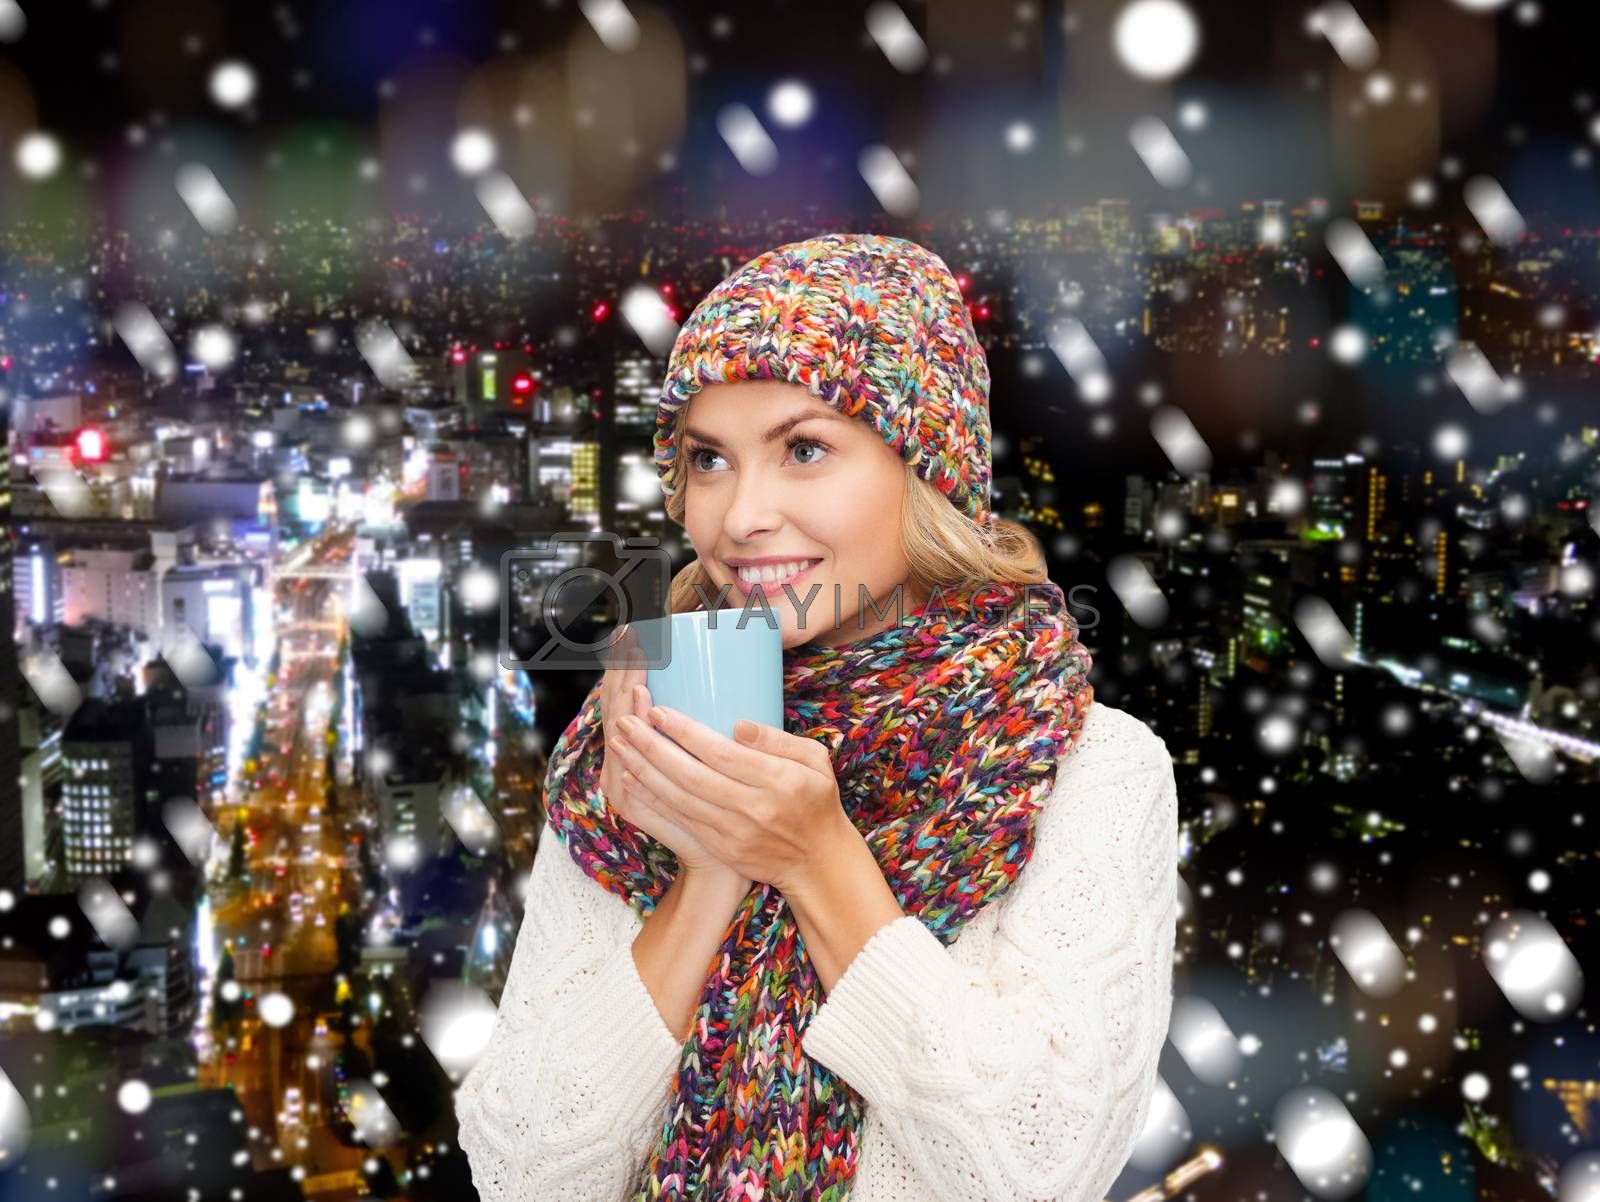 happiness, winter holidays, christmas, beverages and people concept - smiling young woman in warm clothes with cup over snowy city background